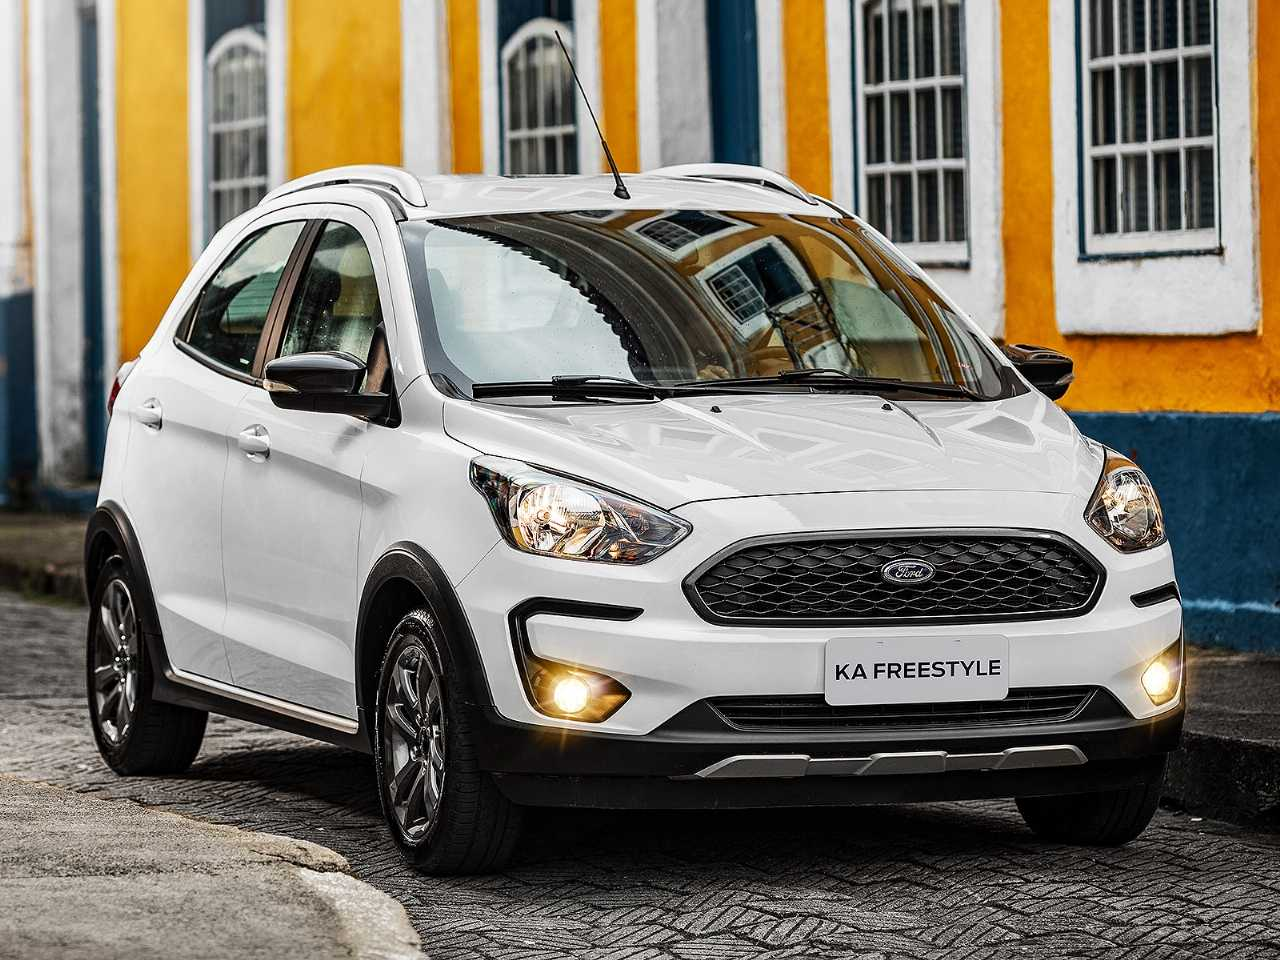 Ford Ka 2020 - ângulo frontal